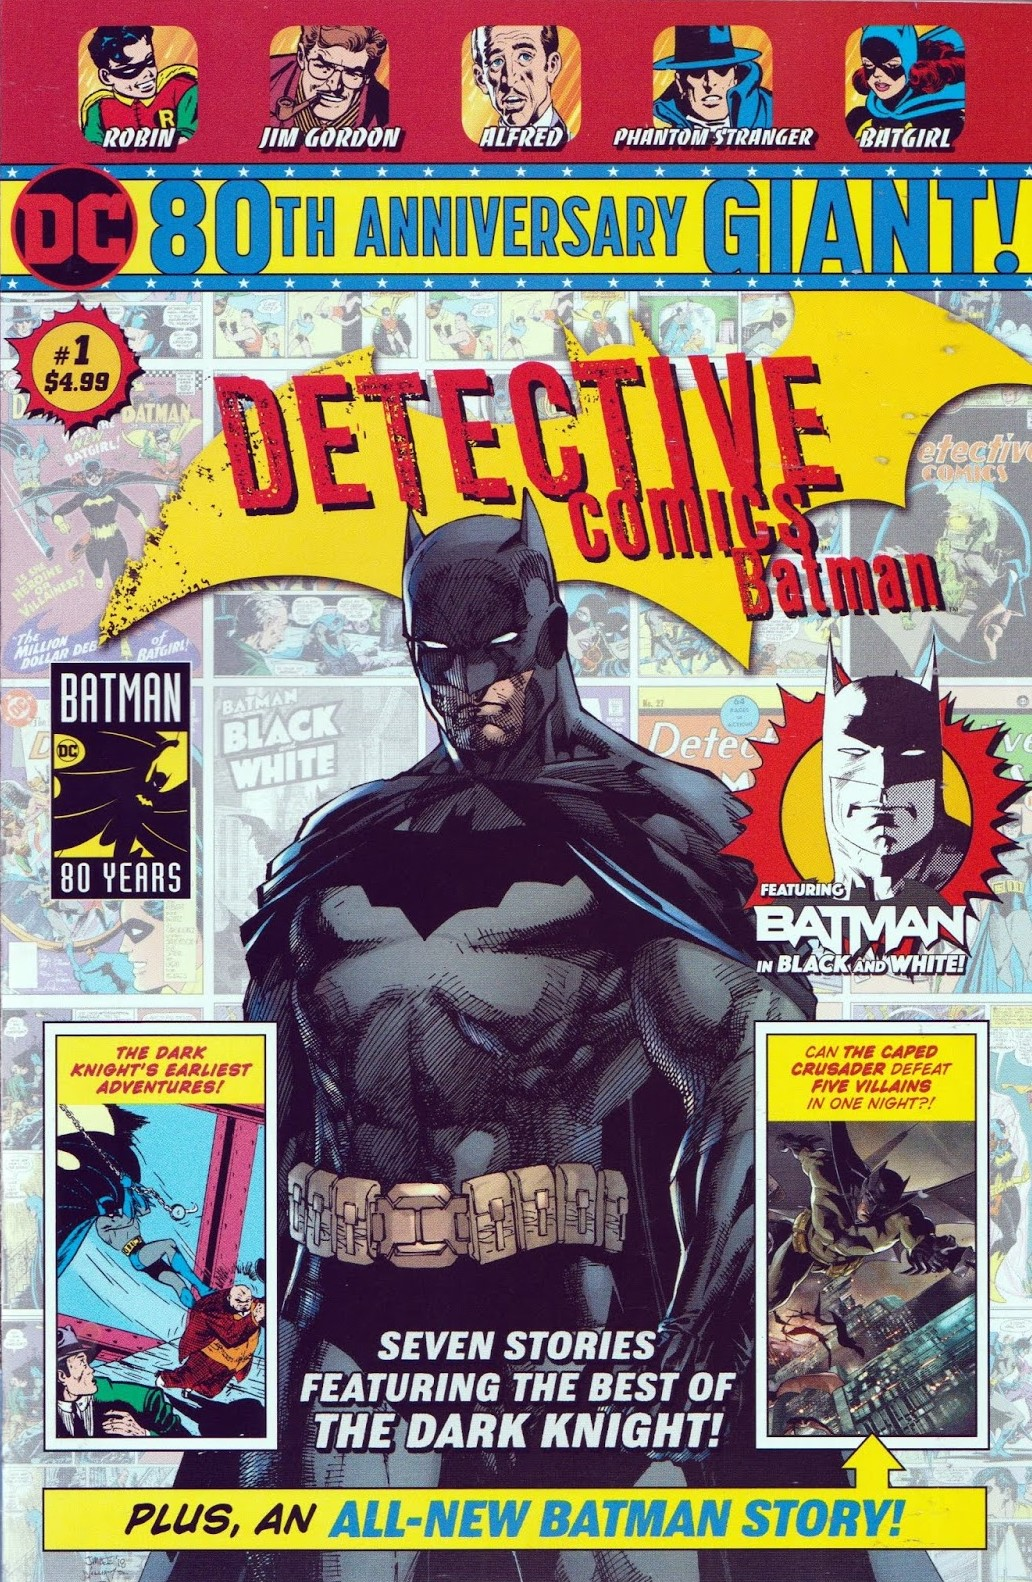 Detective Comics: Batman 80th Anniversary Giant Vol 1 1